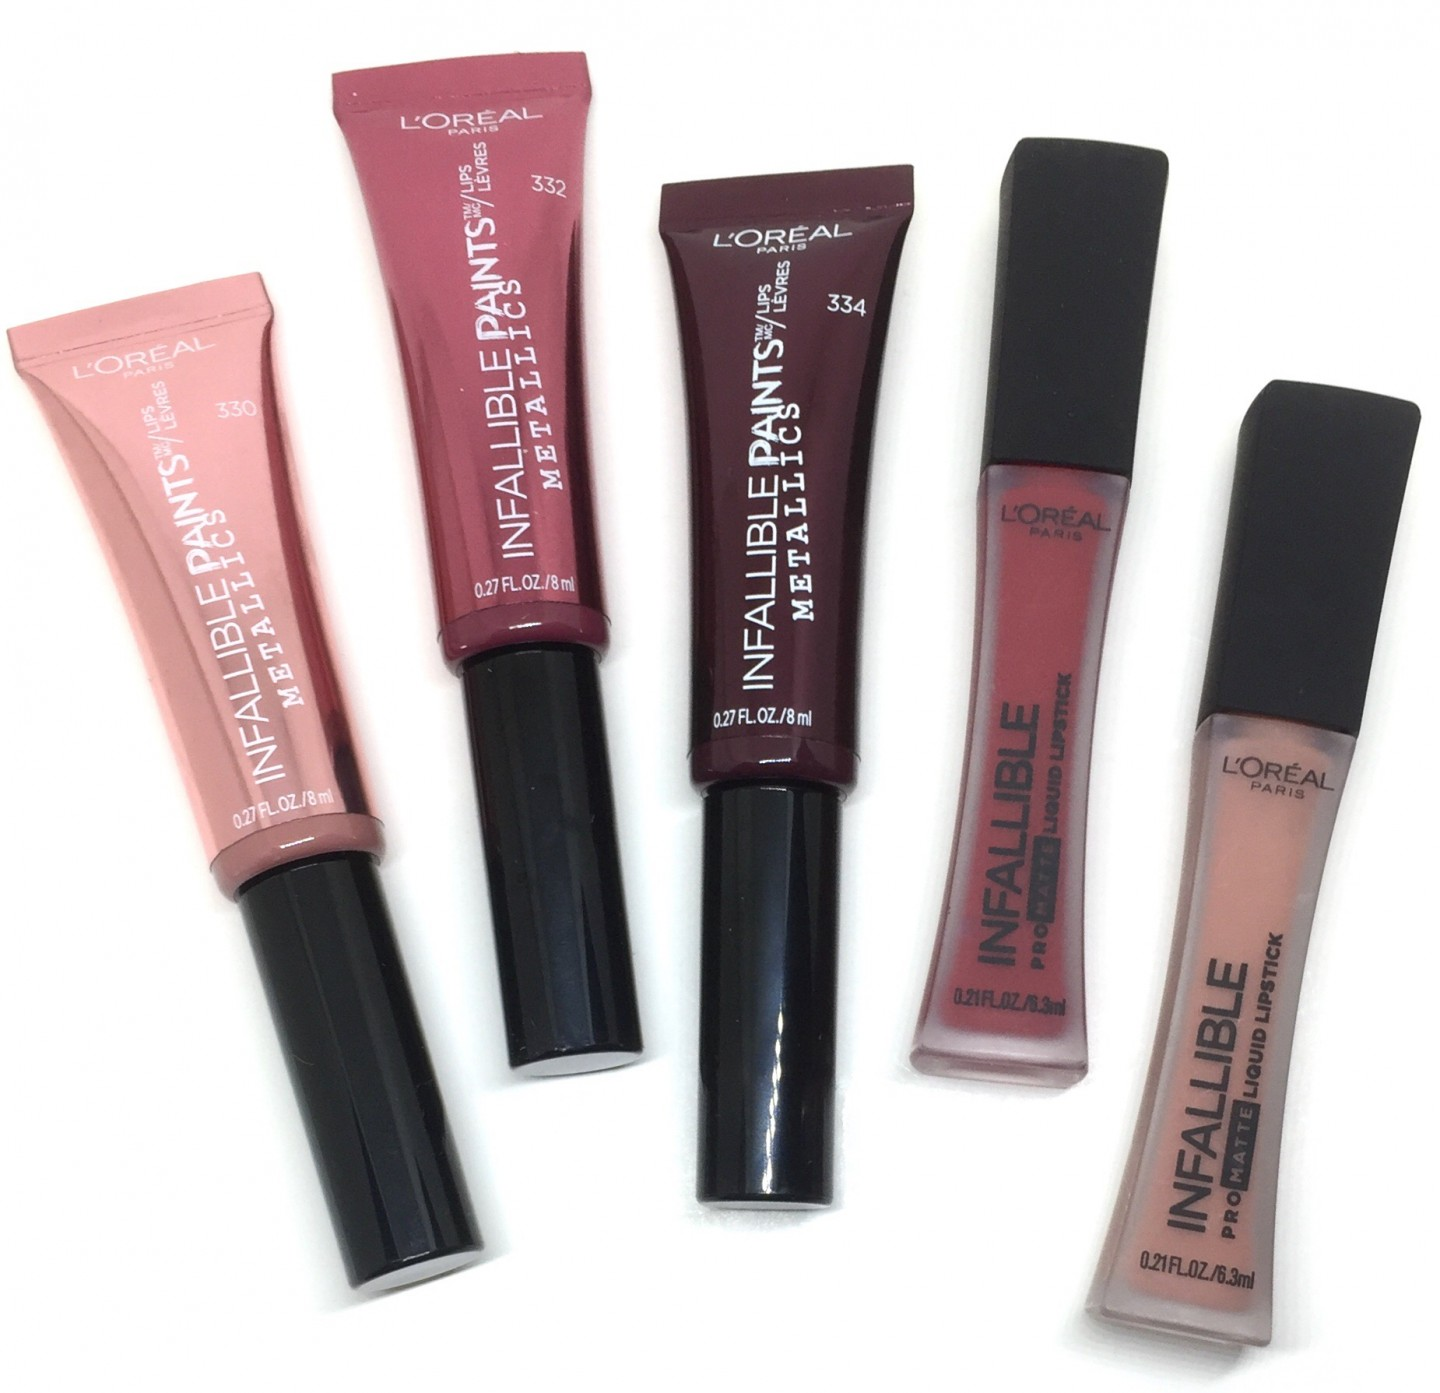 L'OREAL Infallible ProMatte Liquid Lipstick & Metallic Paints.